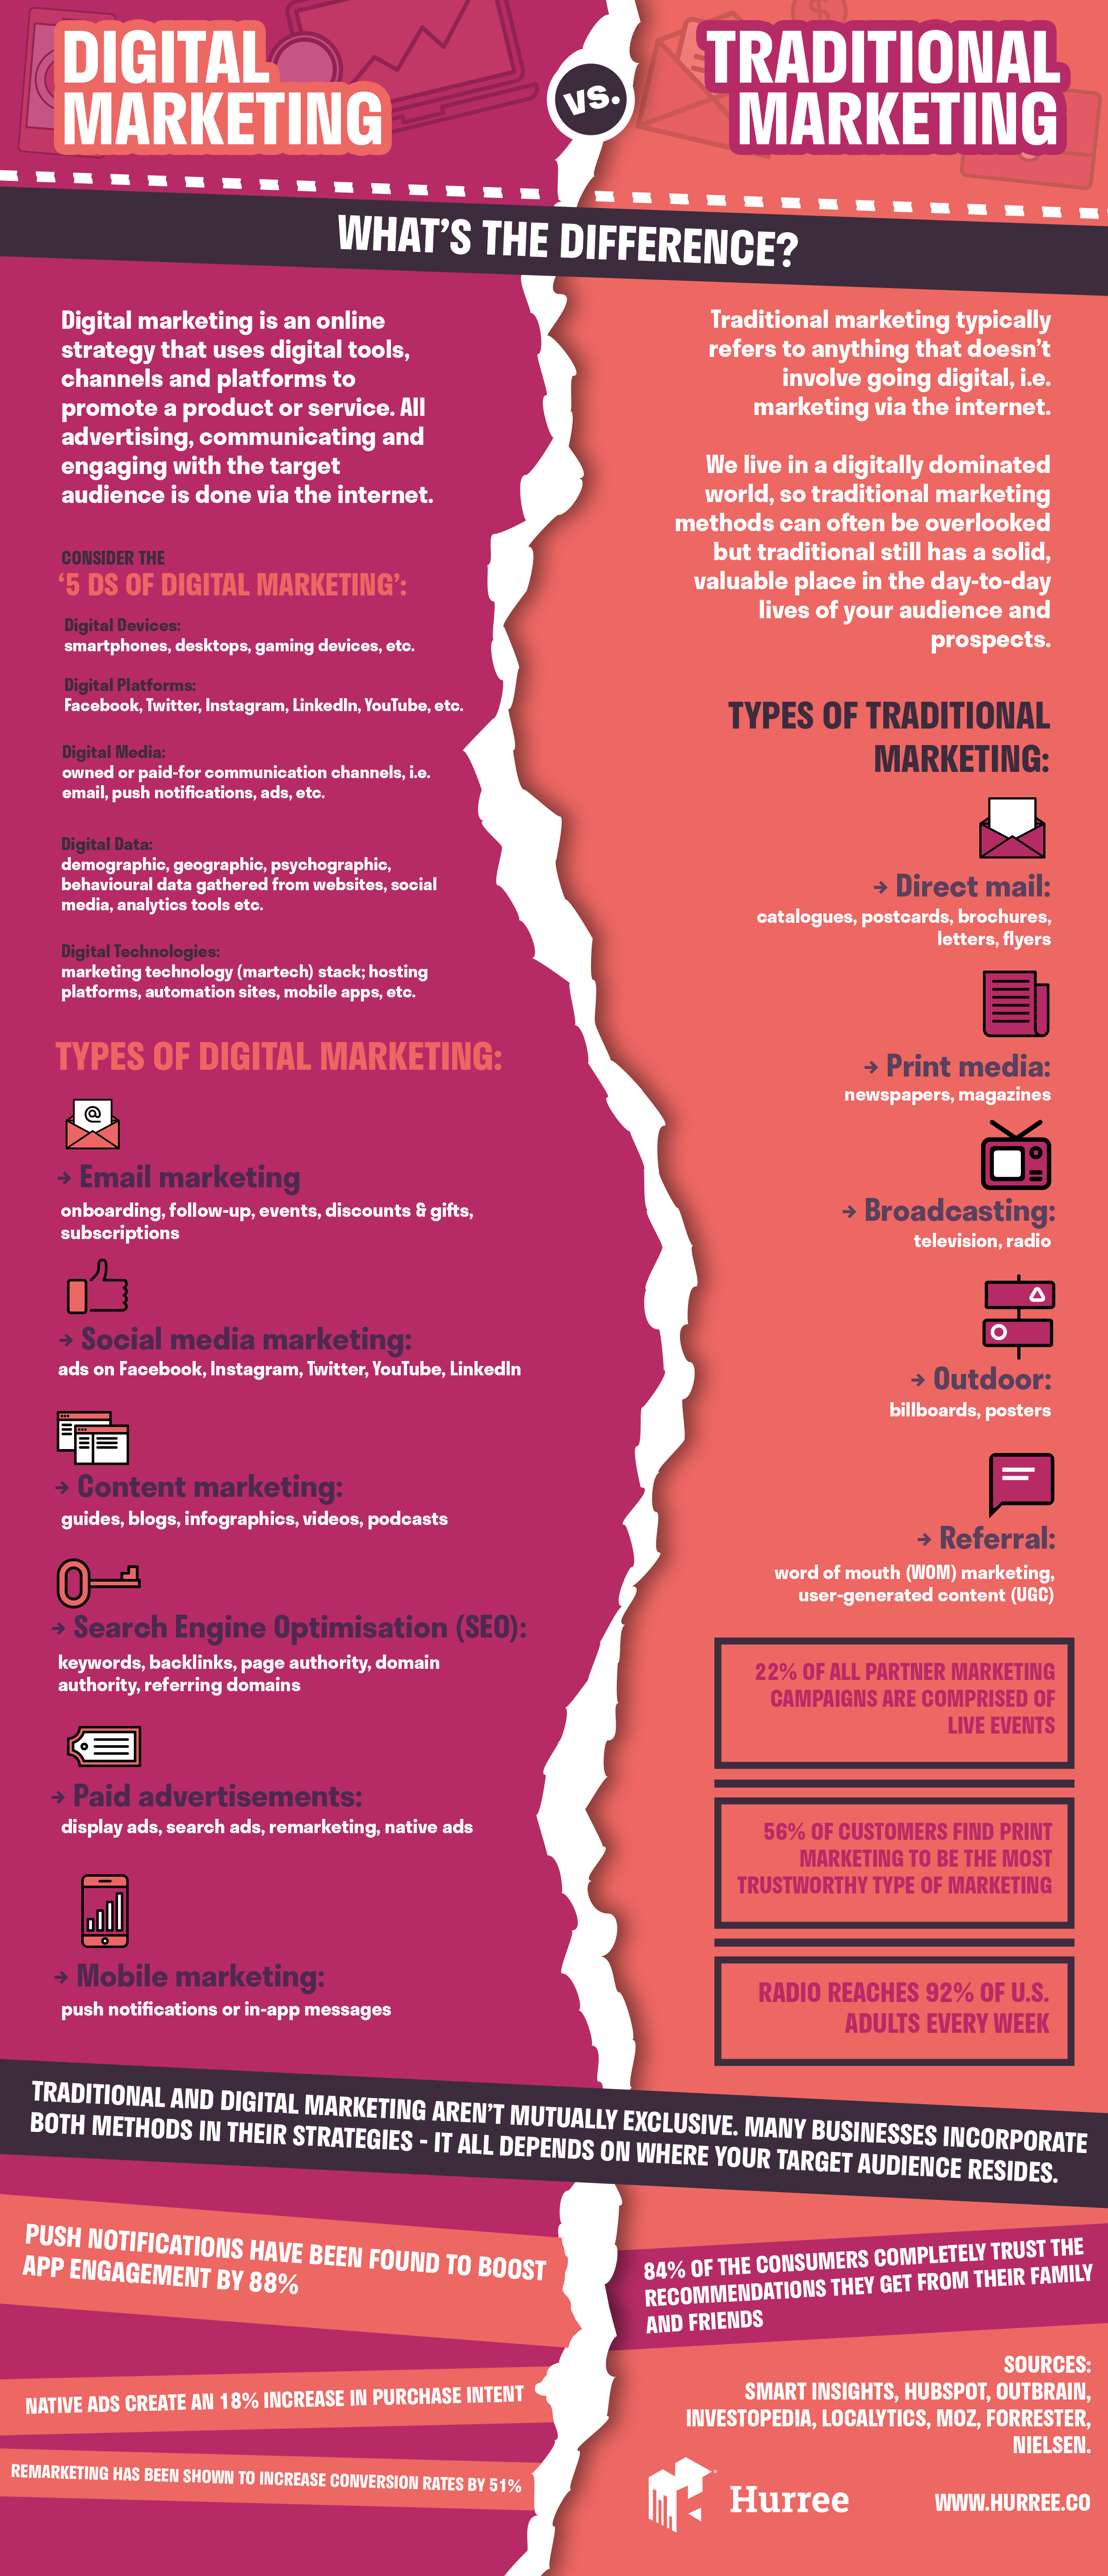 Digital Marketing vs. Traditional Marketing: What is the Difference?